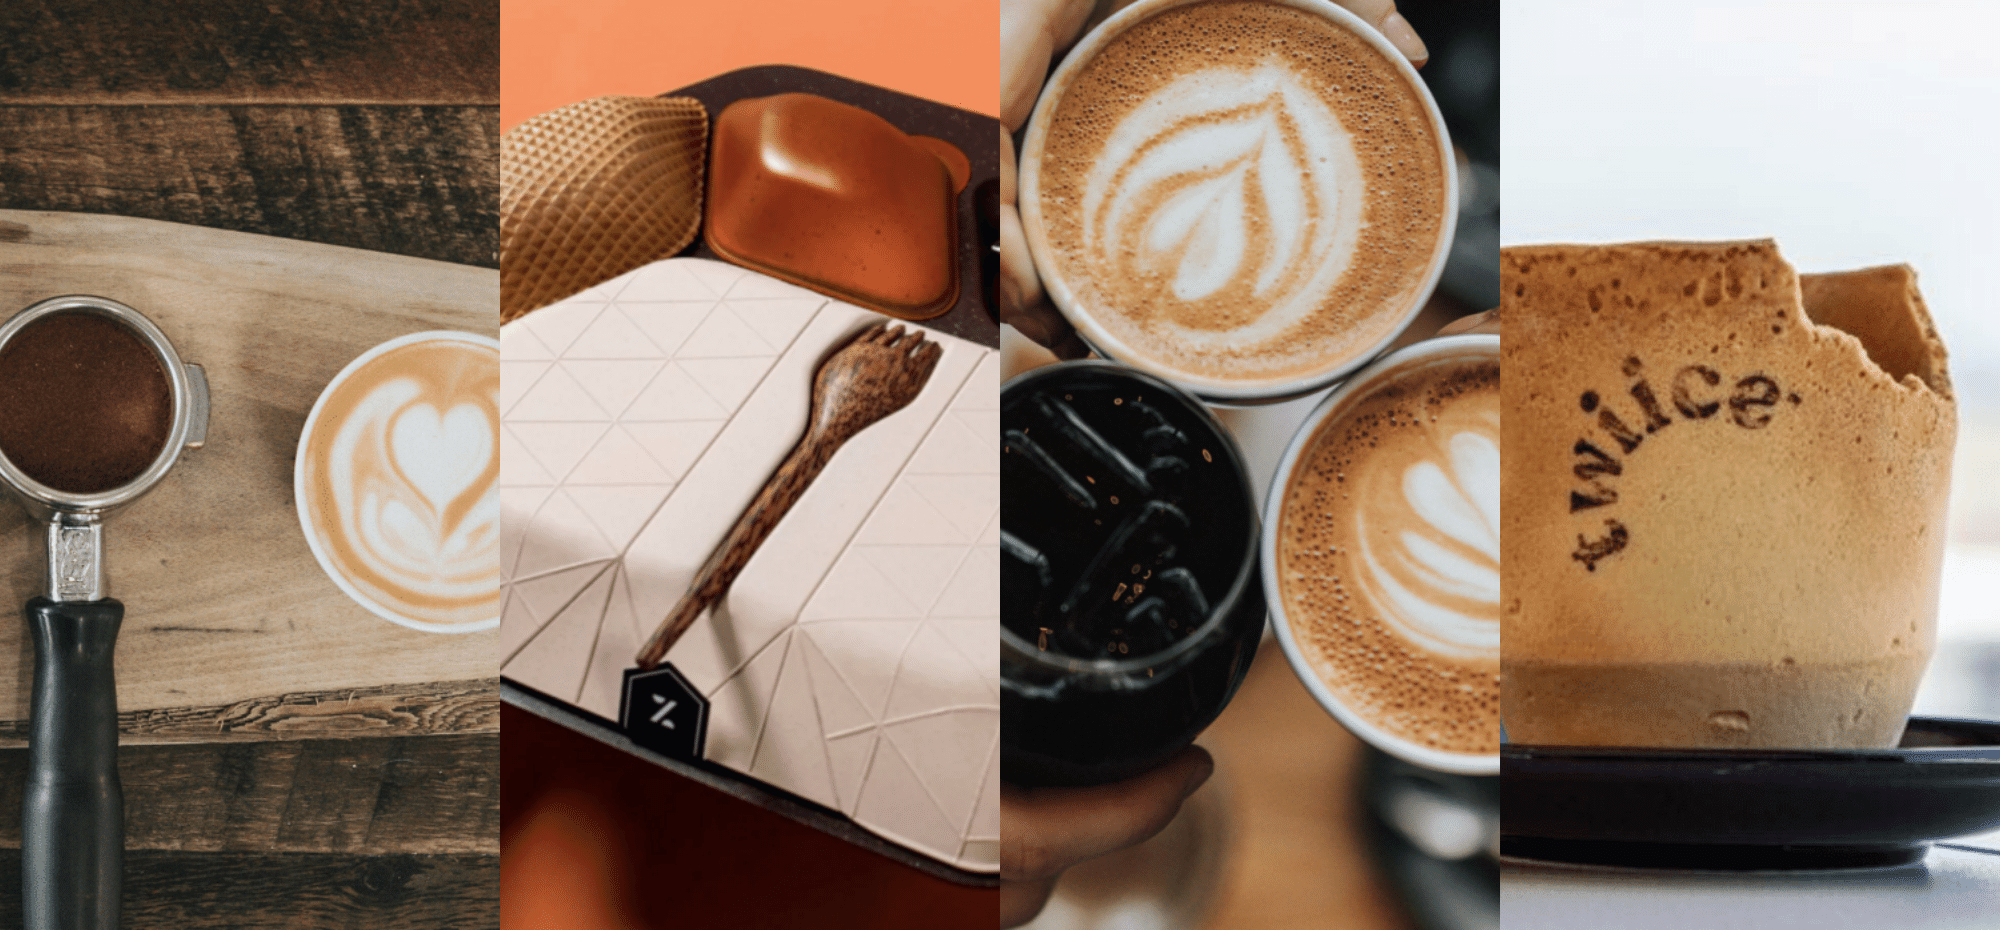 7 Purpose-Driven Innovations Involving Coffee - Springwise